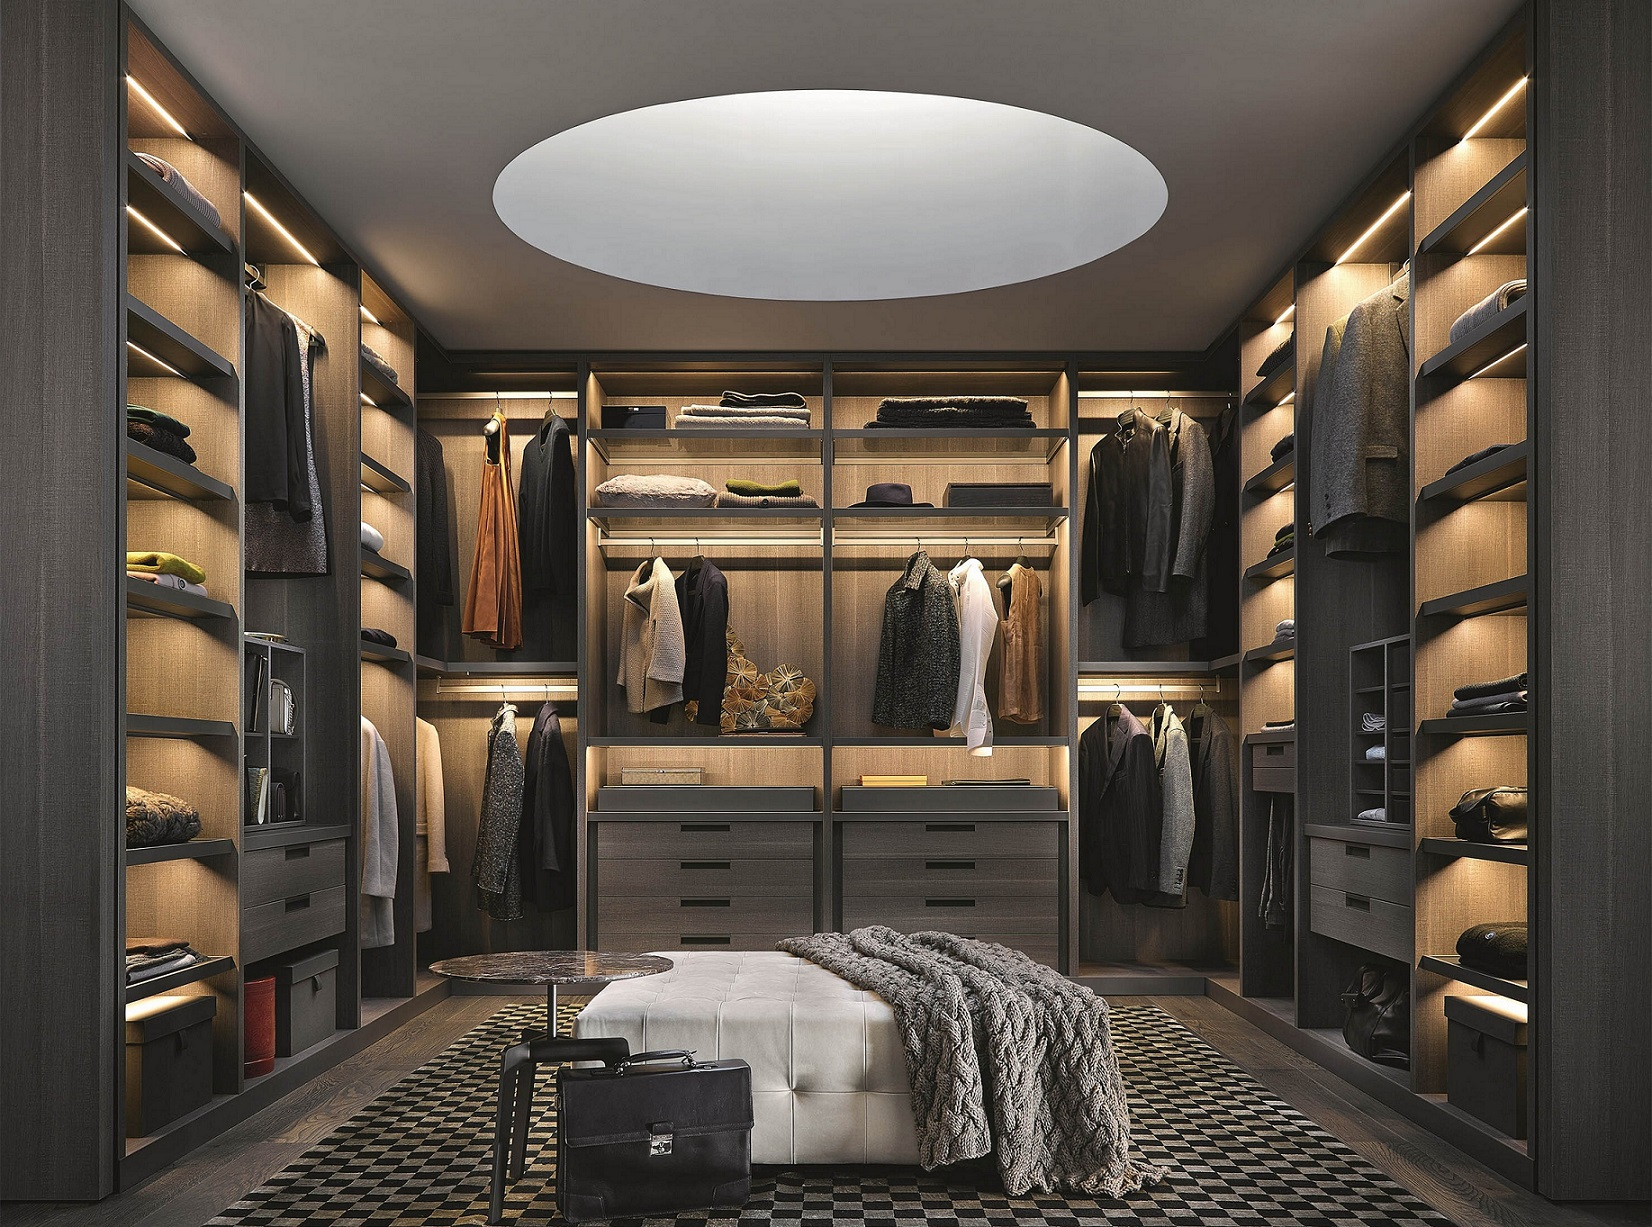 large-walk-in-closet-design-photo-9